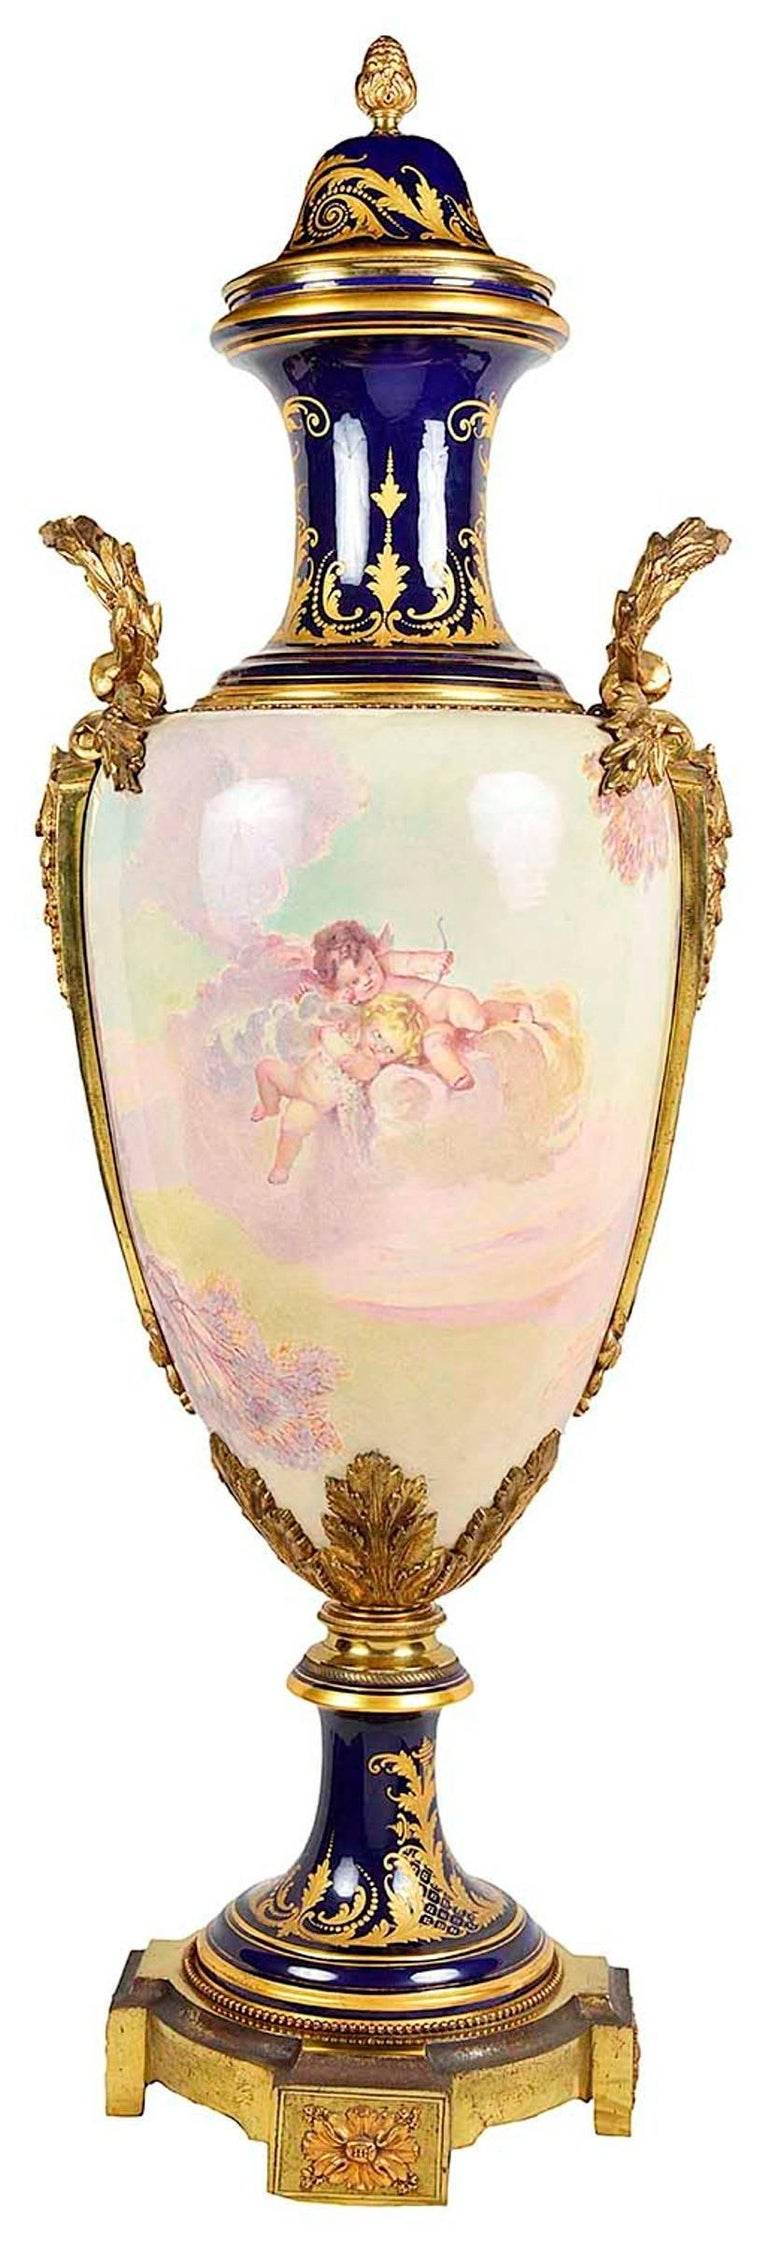 Large 19th Century Sevres Style Porcelain Vase In Excellent Condition For Sale In Brighton, Sussex